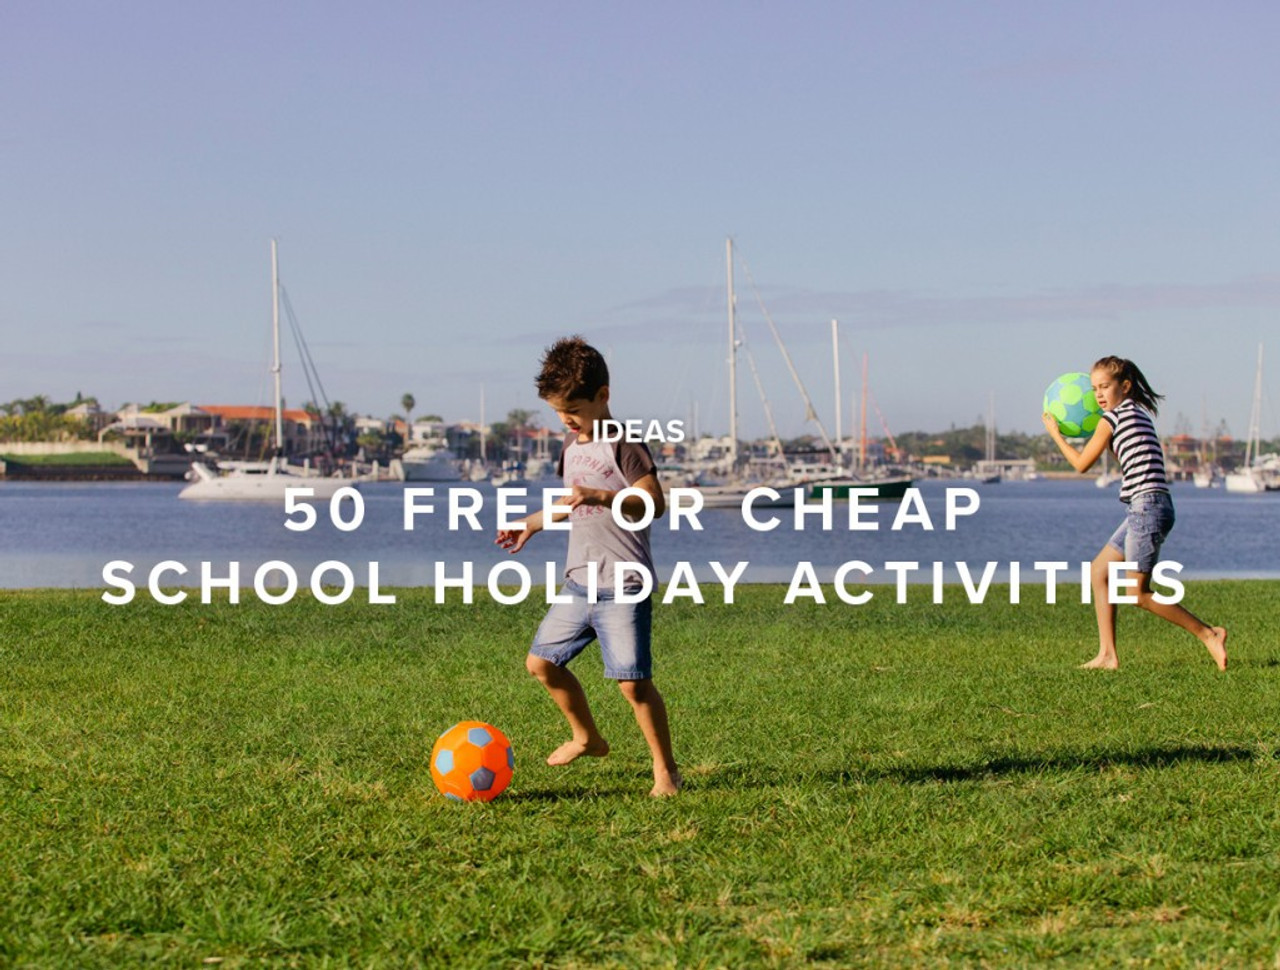 50 Free or Cheap School Holiday Activities